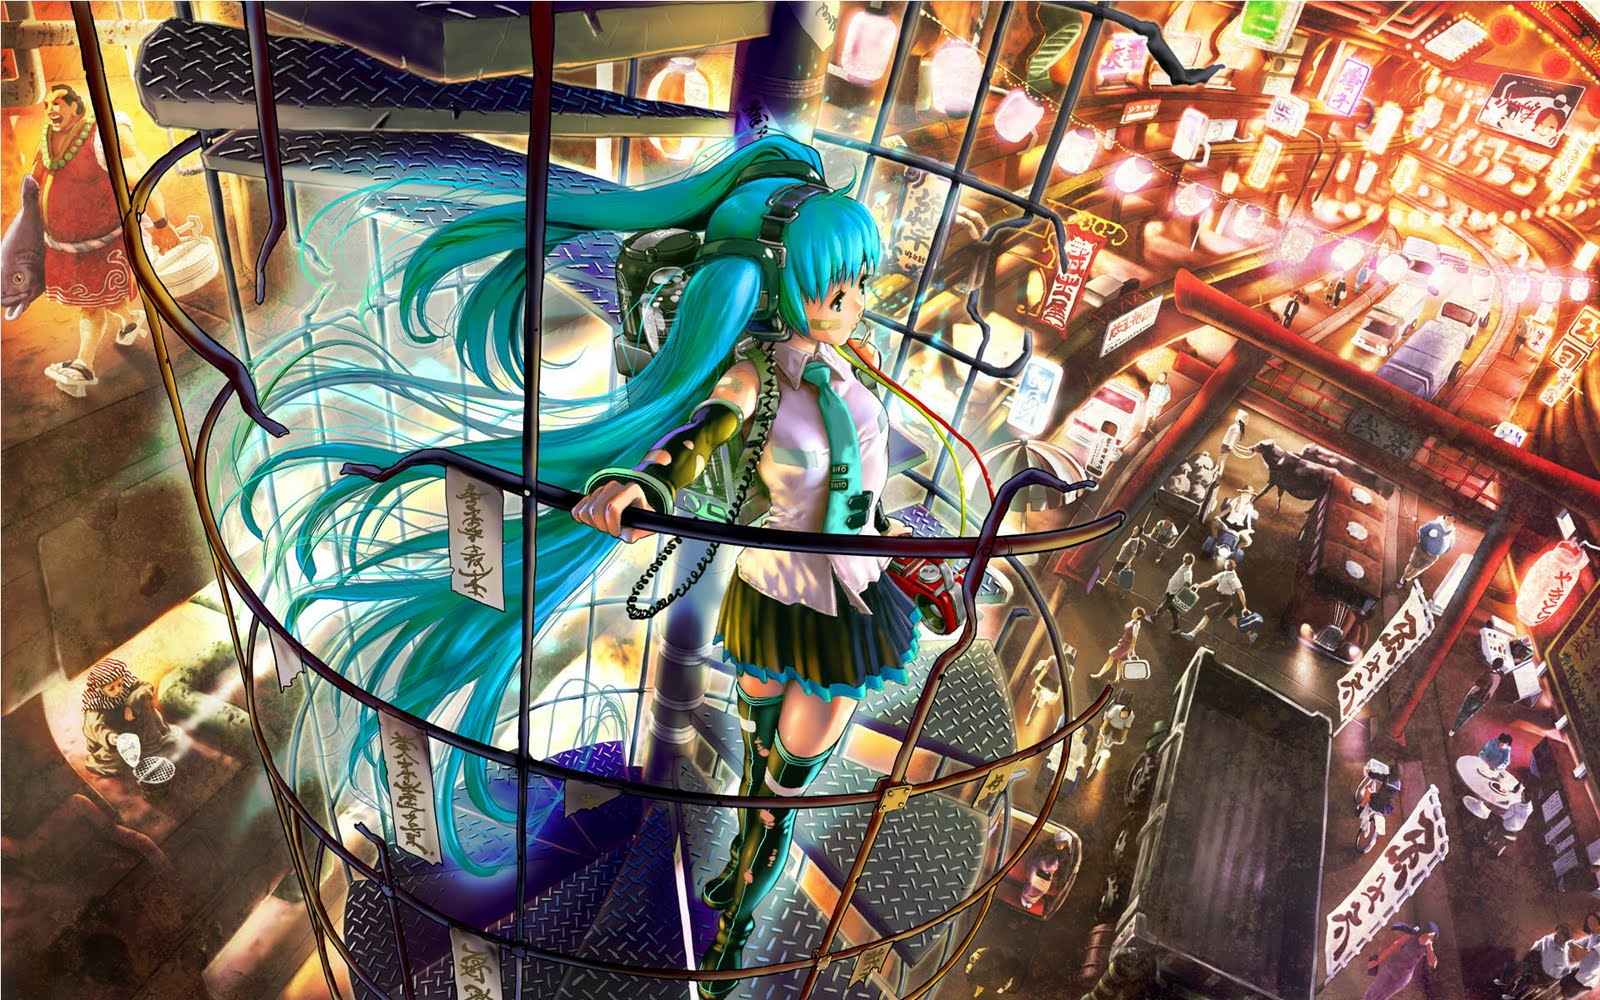 Wallpaper amazing hatsune anime wallpapers 1920 x 1200 - Wallpaper manga anime ...